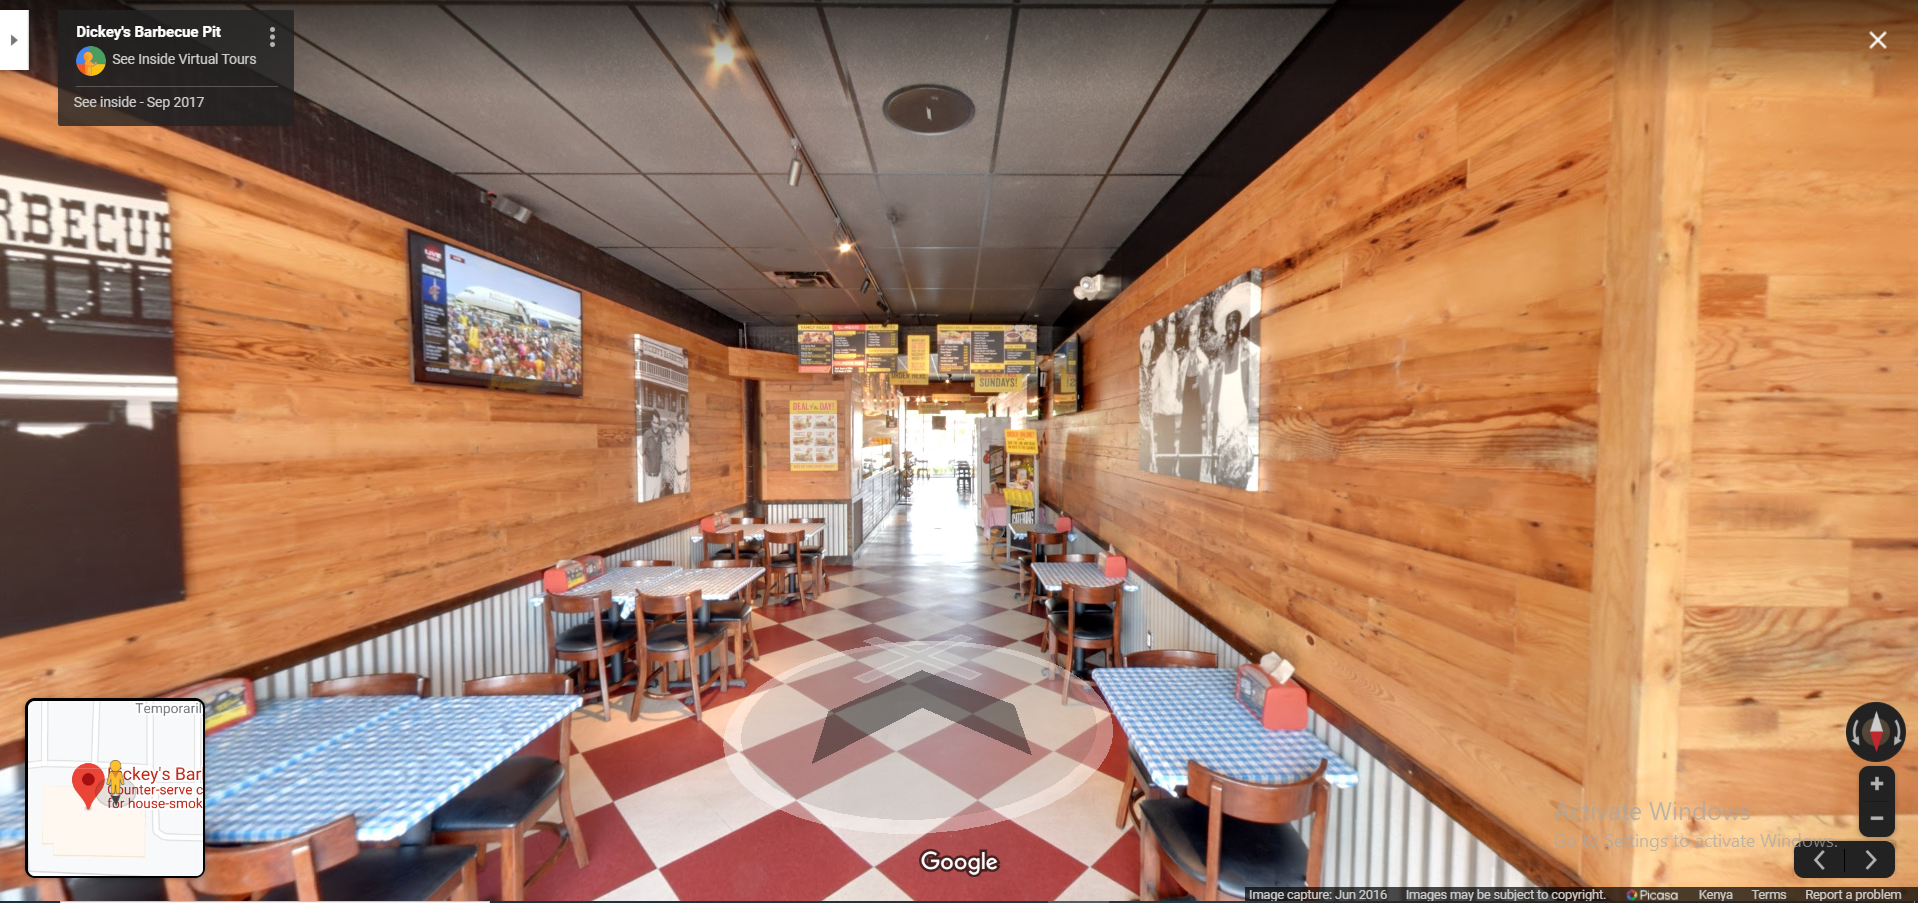 Dickey's Barbecue Pit - Tustin